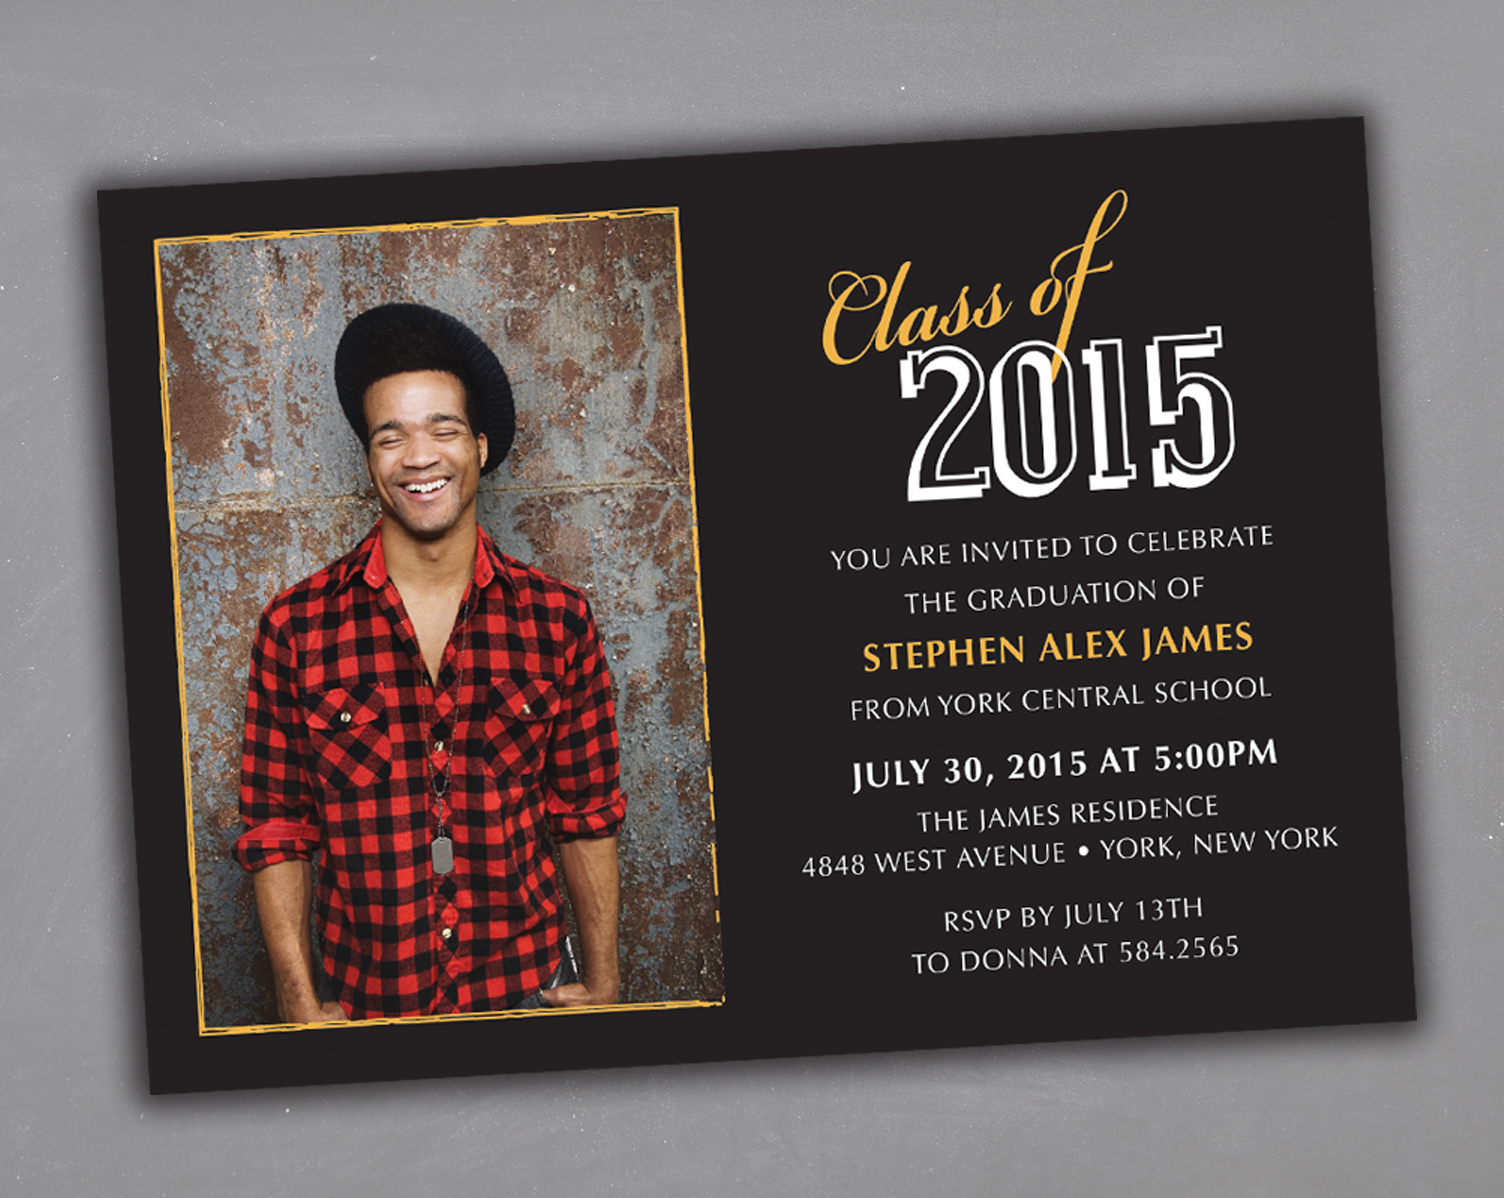 Senior Graduation Invitations and get inspiration to create nice invitation ideas